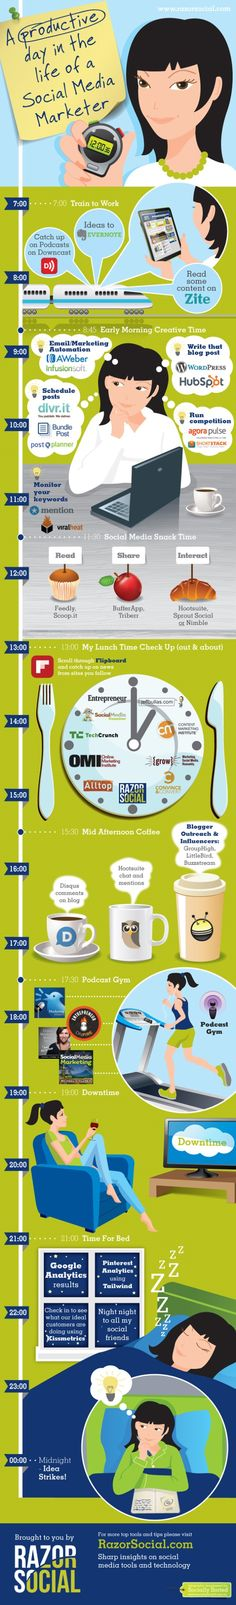 A productive day in the life of a social media marketer #infographics